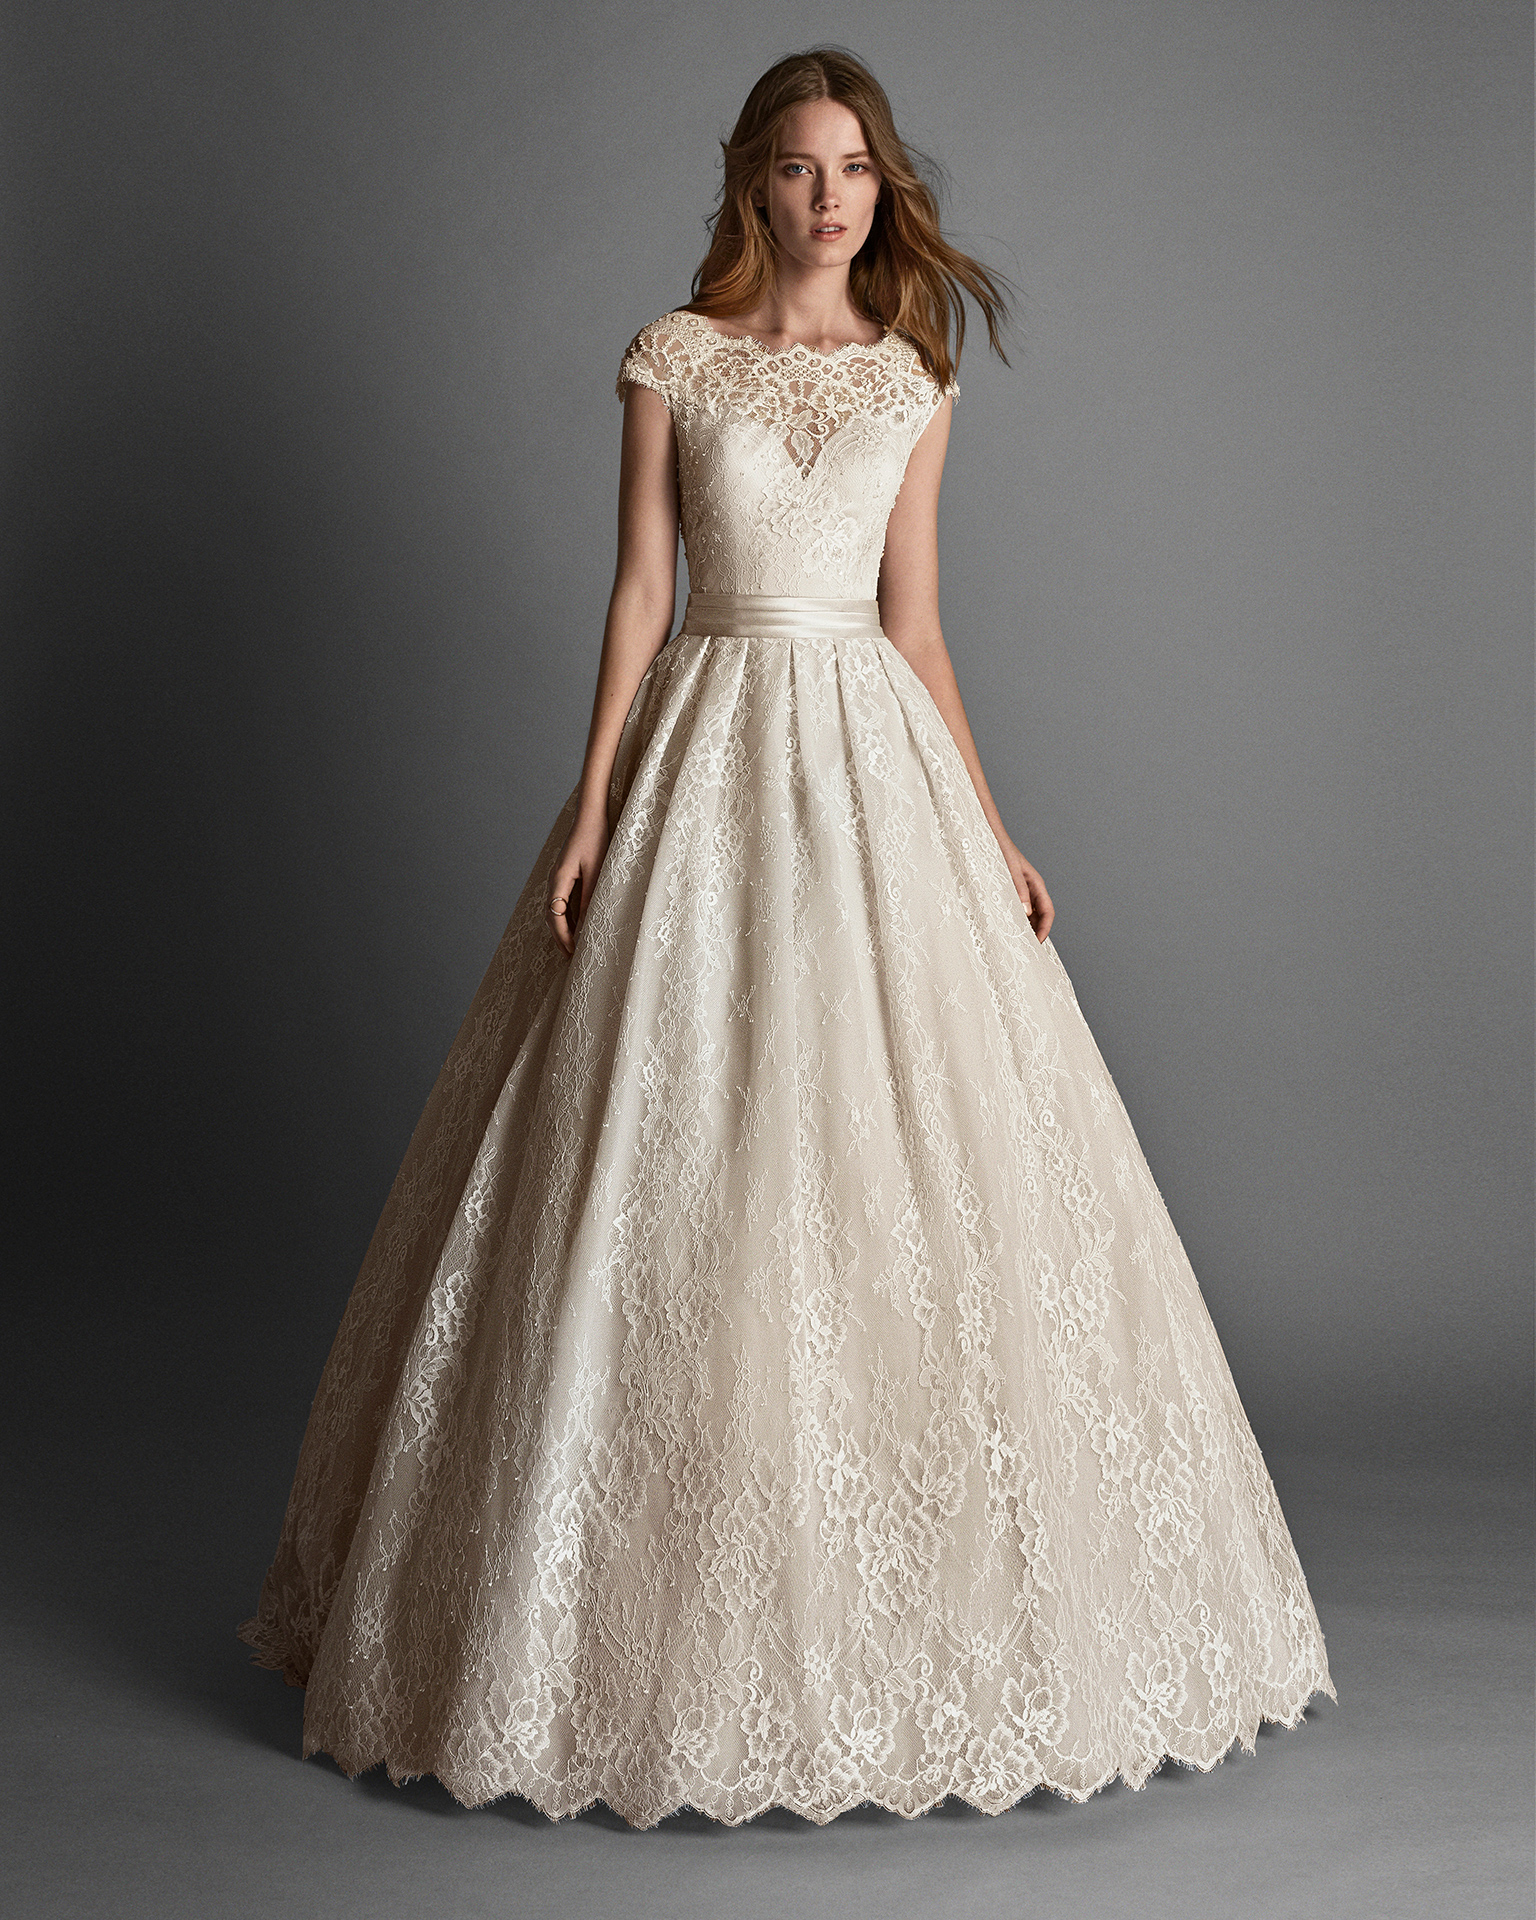 Princess-style beaded lace wedding dress with short sleeves and low back, in rose.